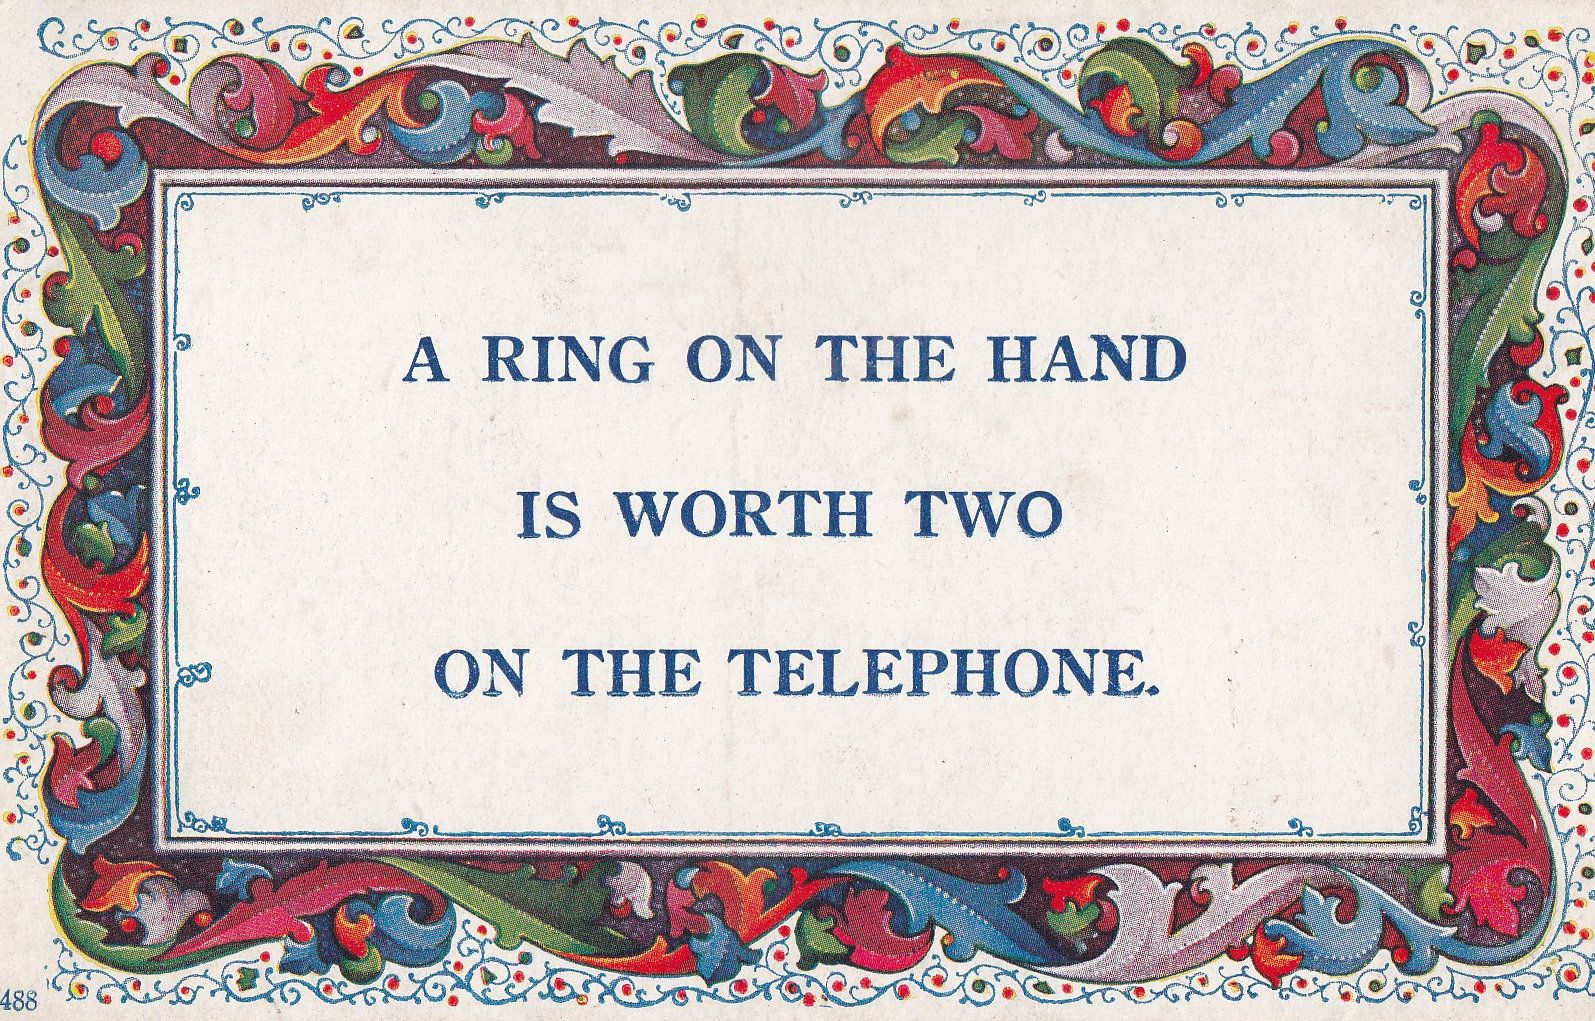 Telephone Ring On The Hand Proverb Songcard Old Postcard